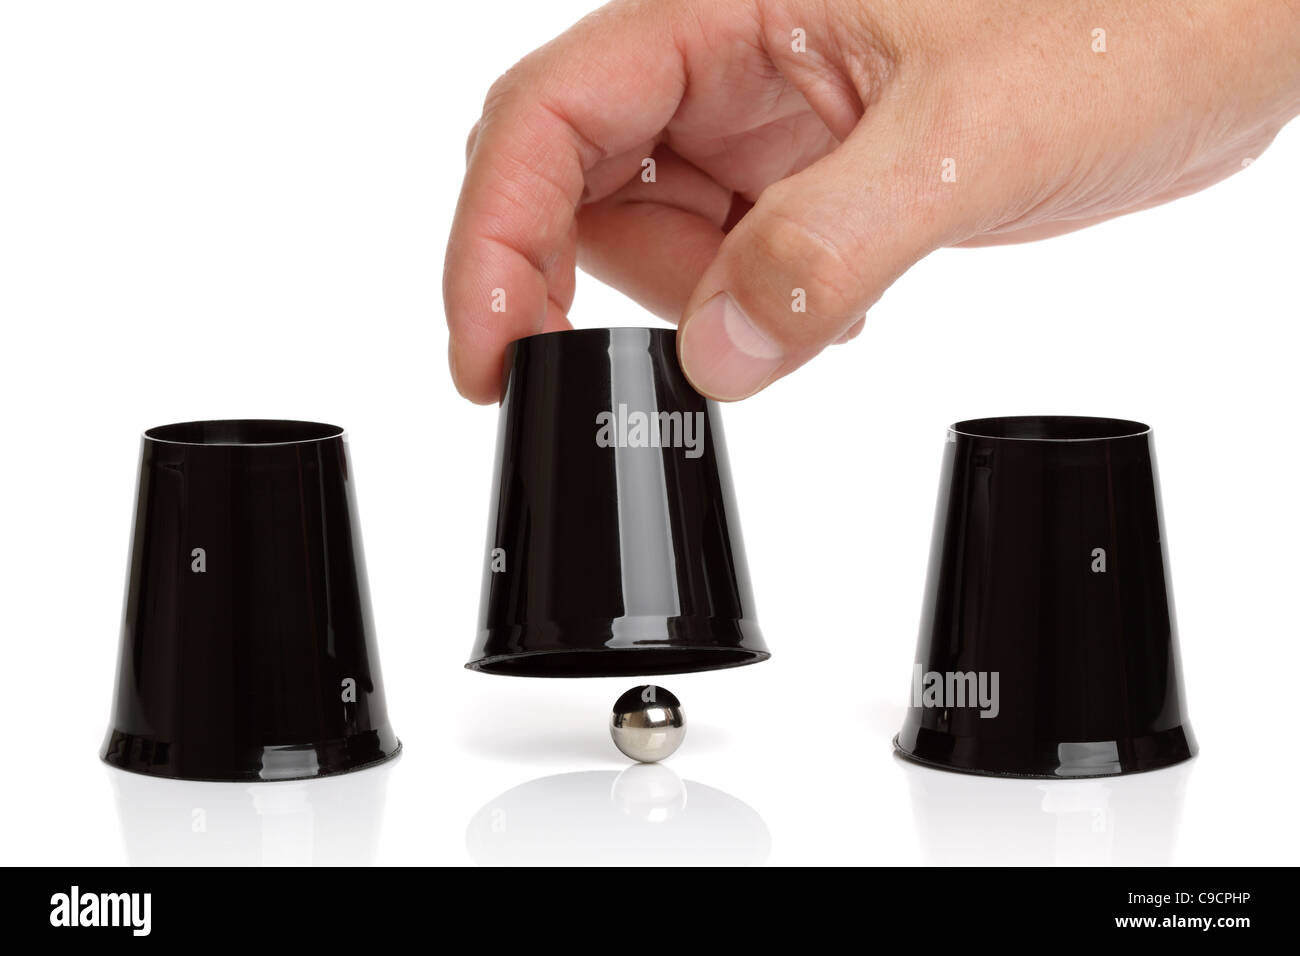 Cup and ball shell game - Stock Image